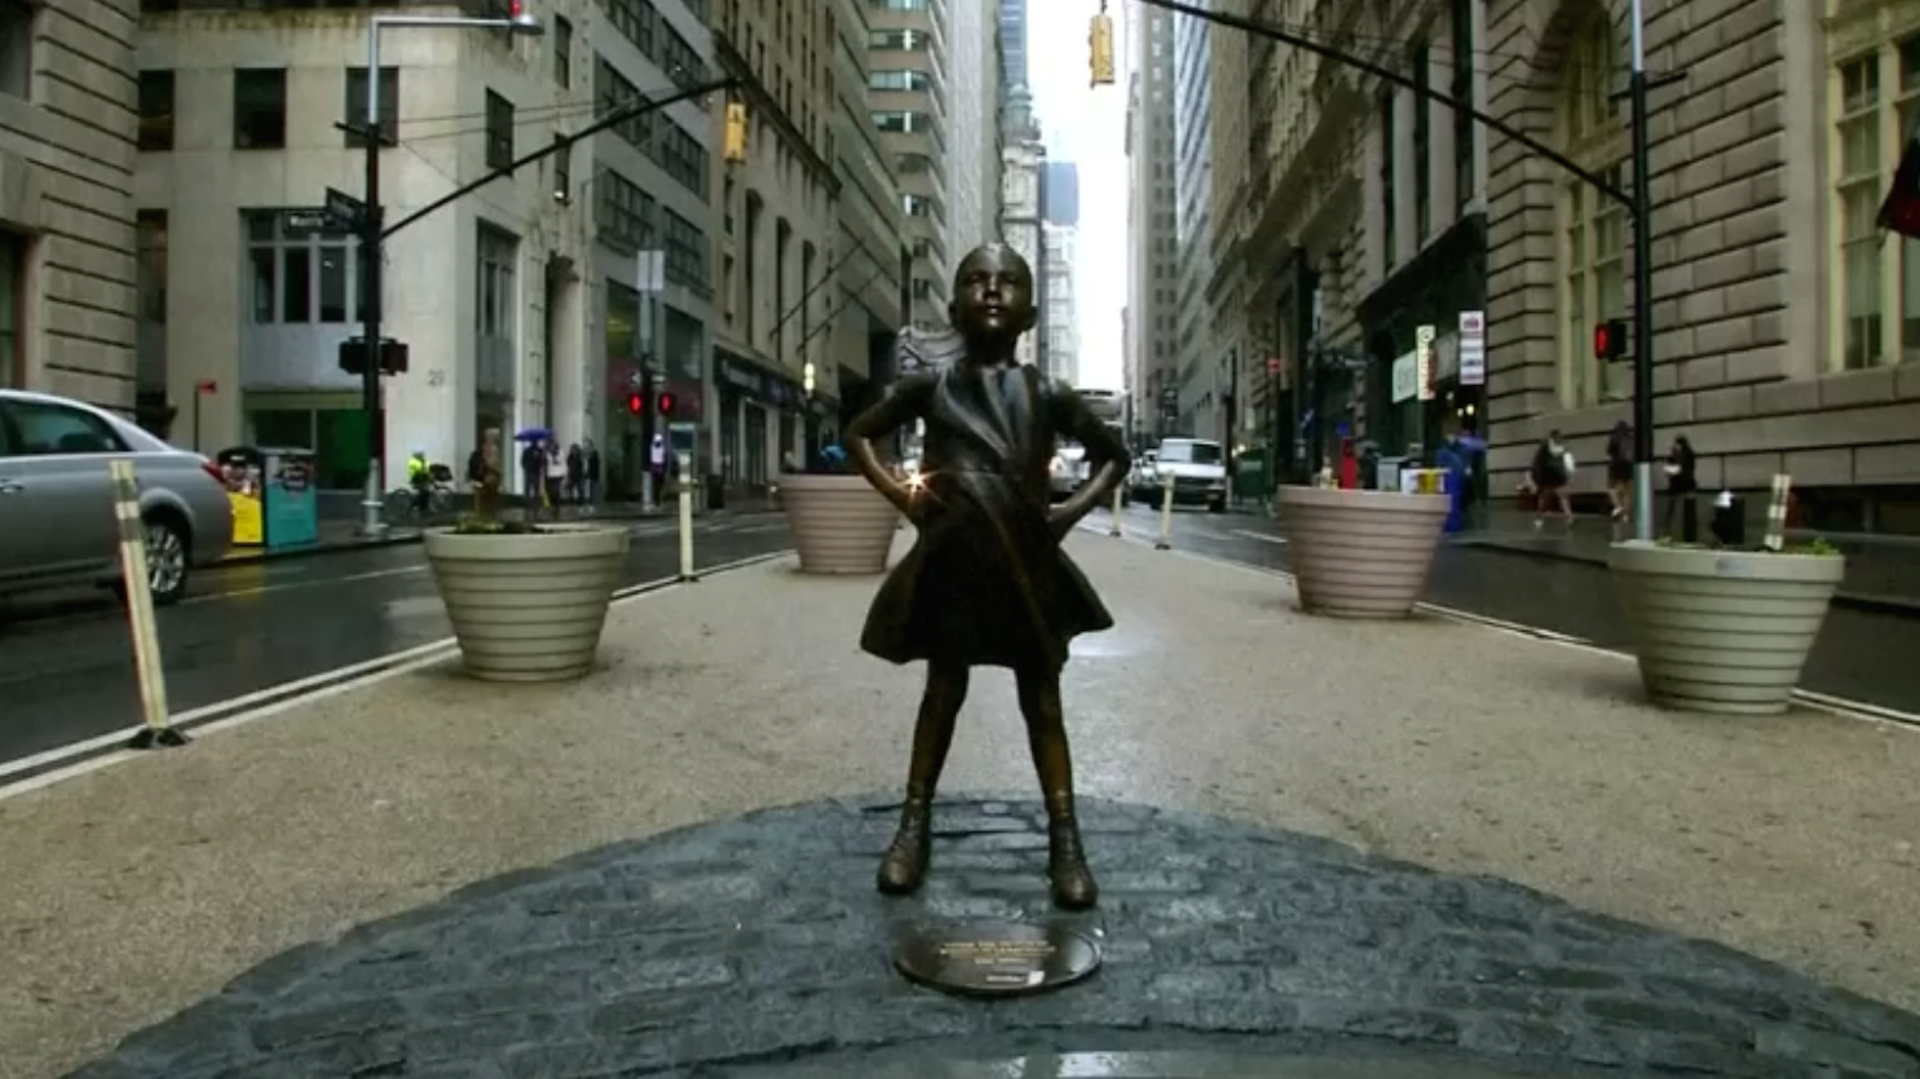 'Charging Bull' sculptor says 'Fearless Girl' distorts his art. He's fighting back.